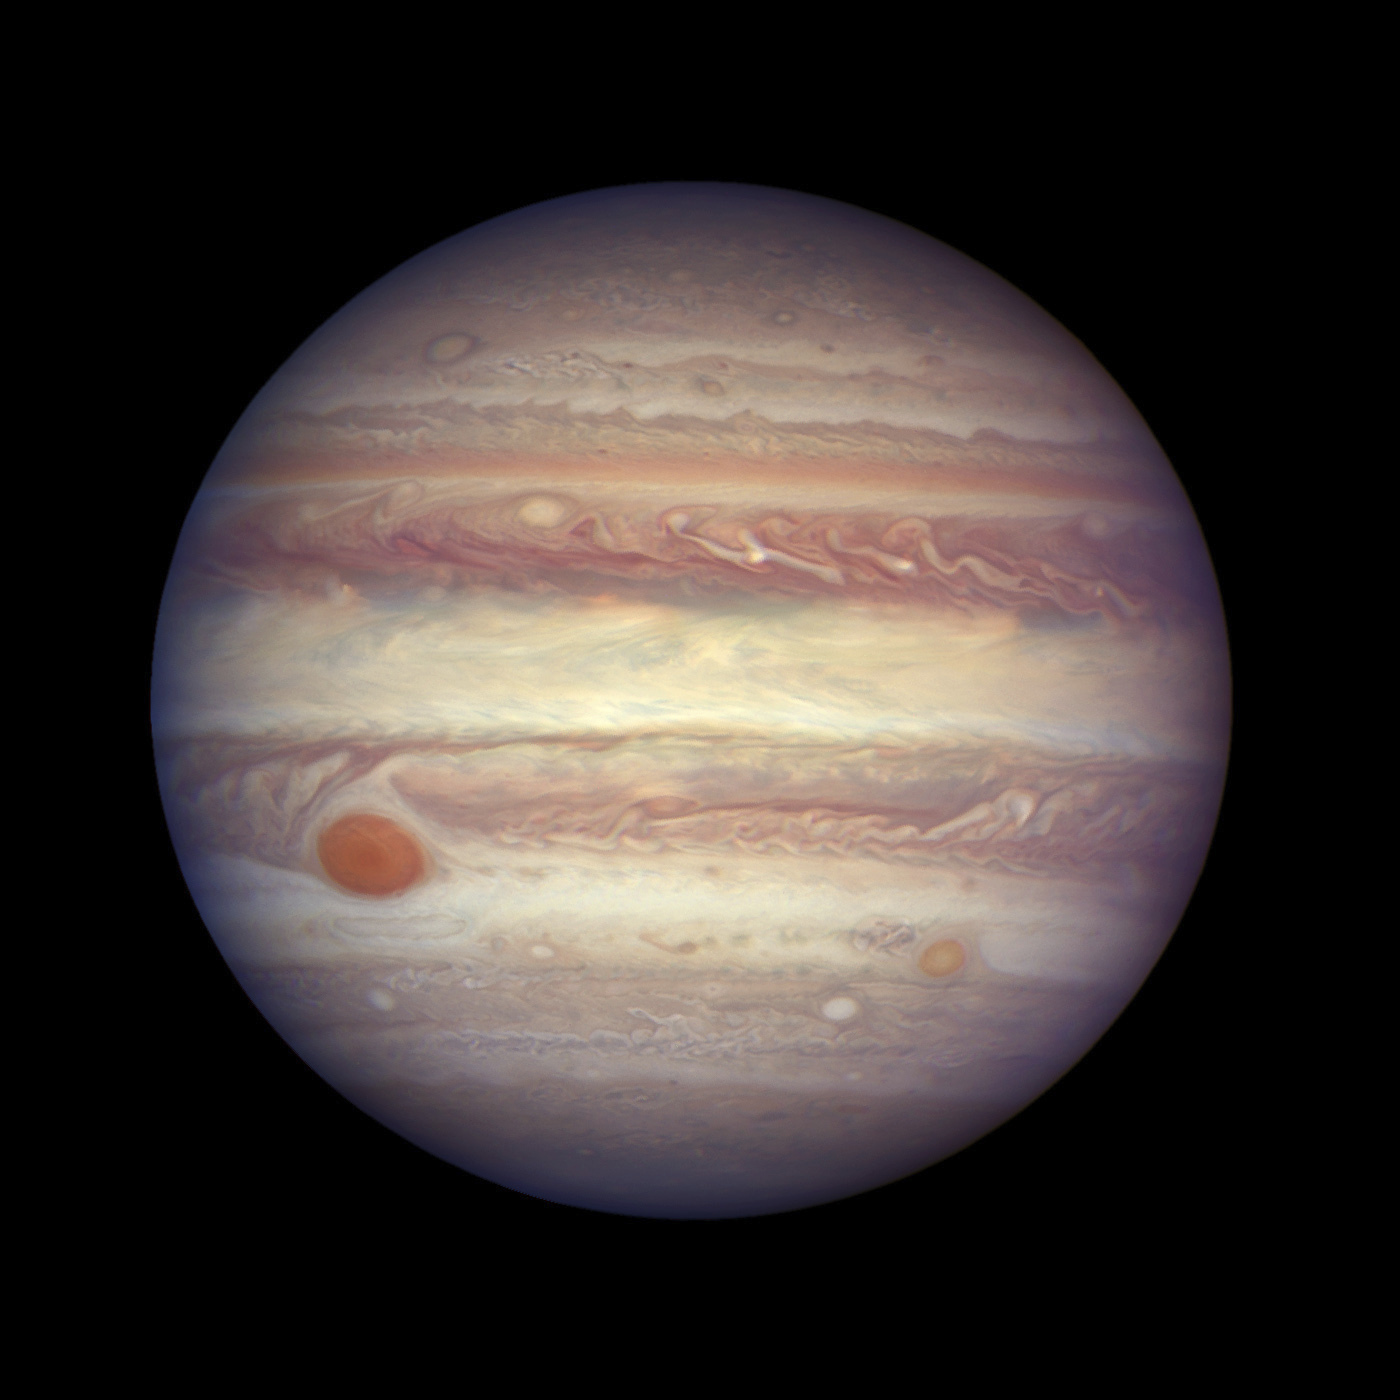 This image made available by NASA shows the planet Jupiter when it was at a distance of about 668 million kilometers (415 million miles) from Earth. Jupiter was extra close and extra bright last week, and the Hubble Space Telescope took advantage of the opportunity to make this photo of the gas giant. (NASA, ESA, and A. Simon (GSFC) via AP)